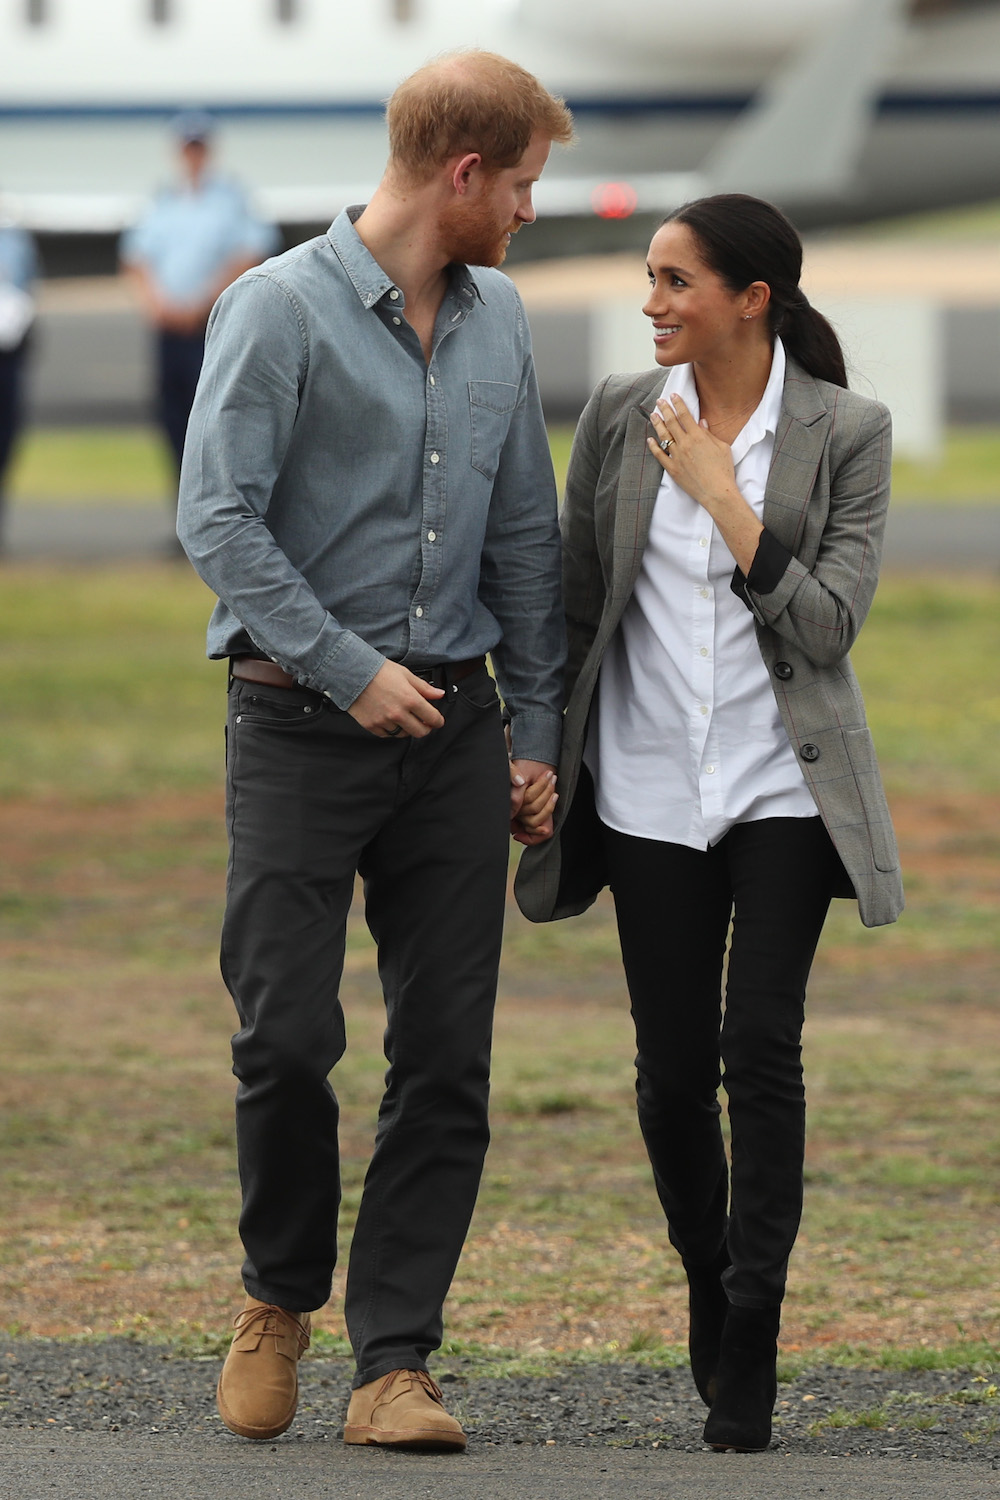 Prince Harry, Duke of Sussex and Meghan, Duchess of Sussex attend XXX on October 17, 2018 in Dubbo, Australia. The Duke and Duchess of Sussex are on their official 16-day Autumn tour visiting cities in Australia, Fiji, Tonga and New Zealand.